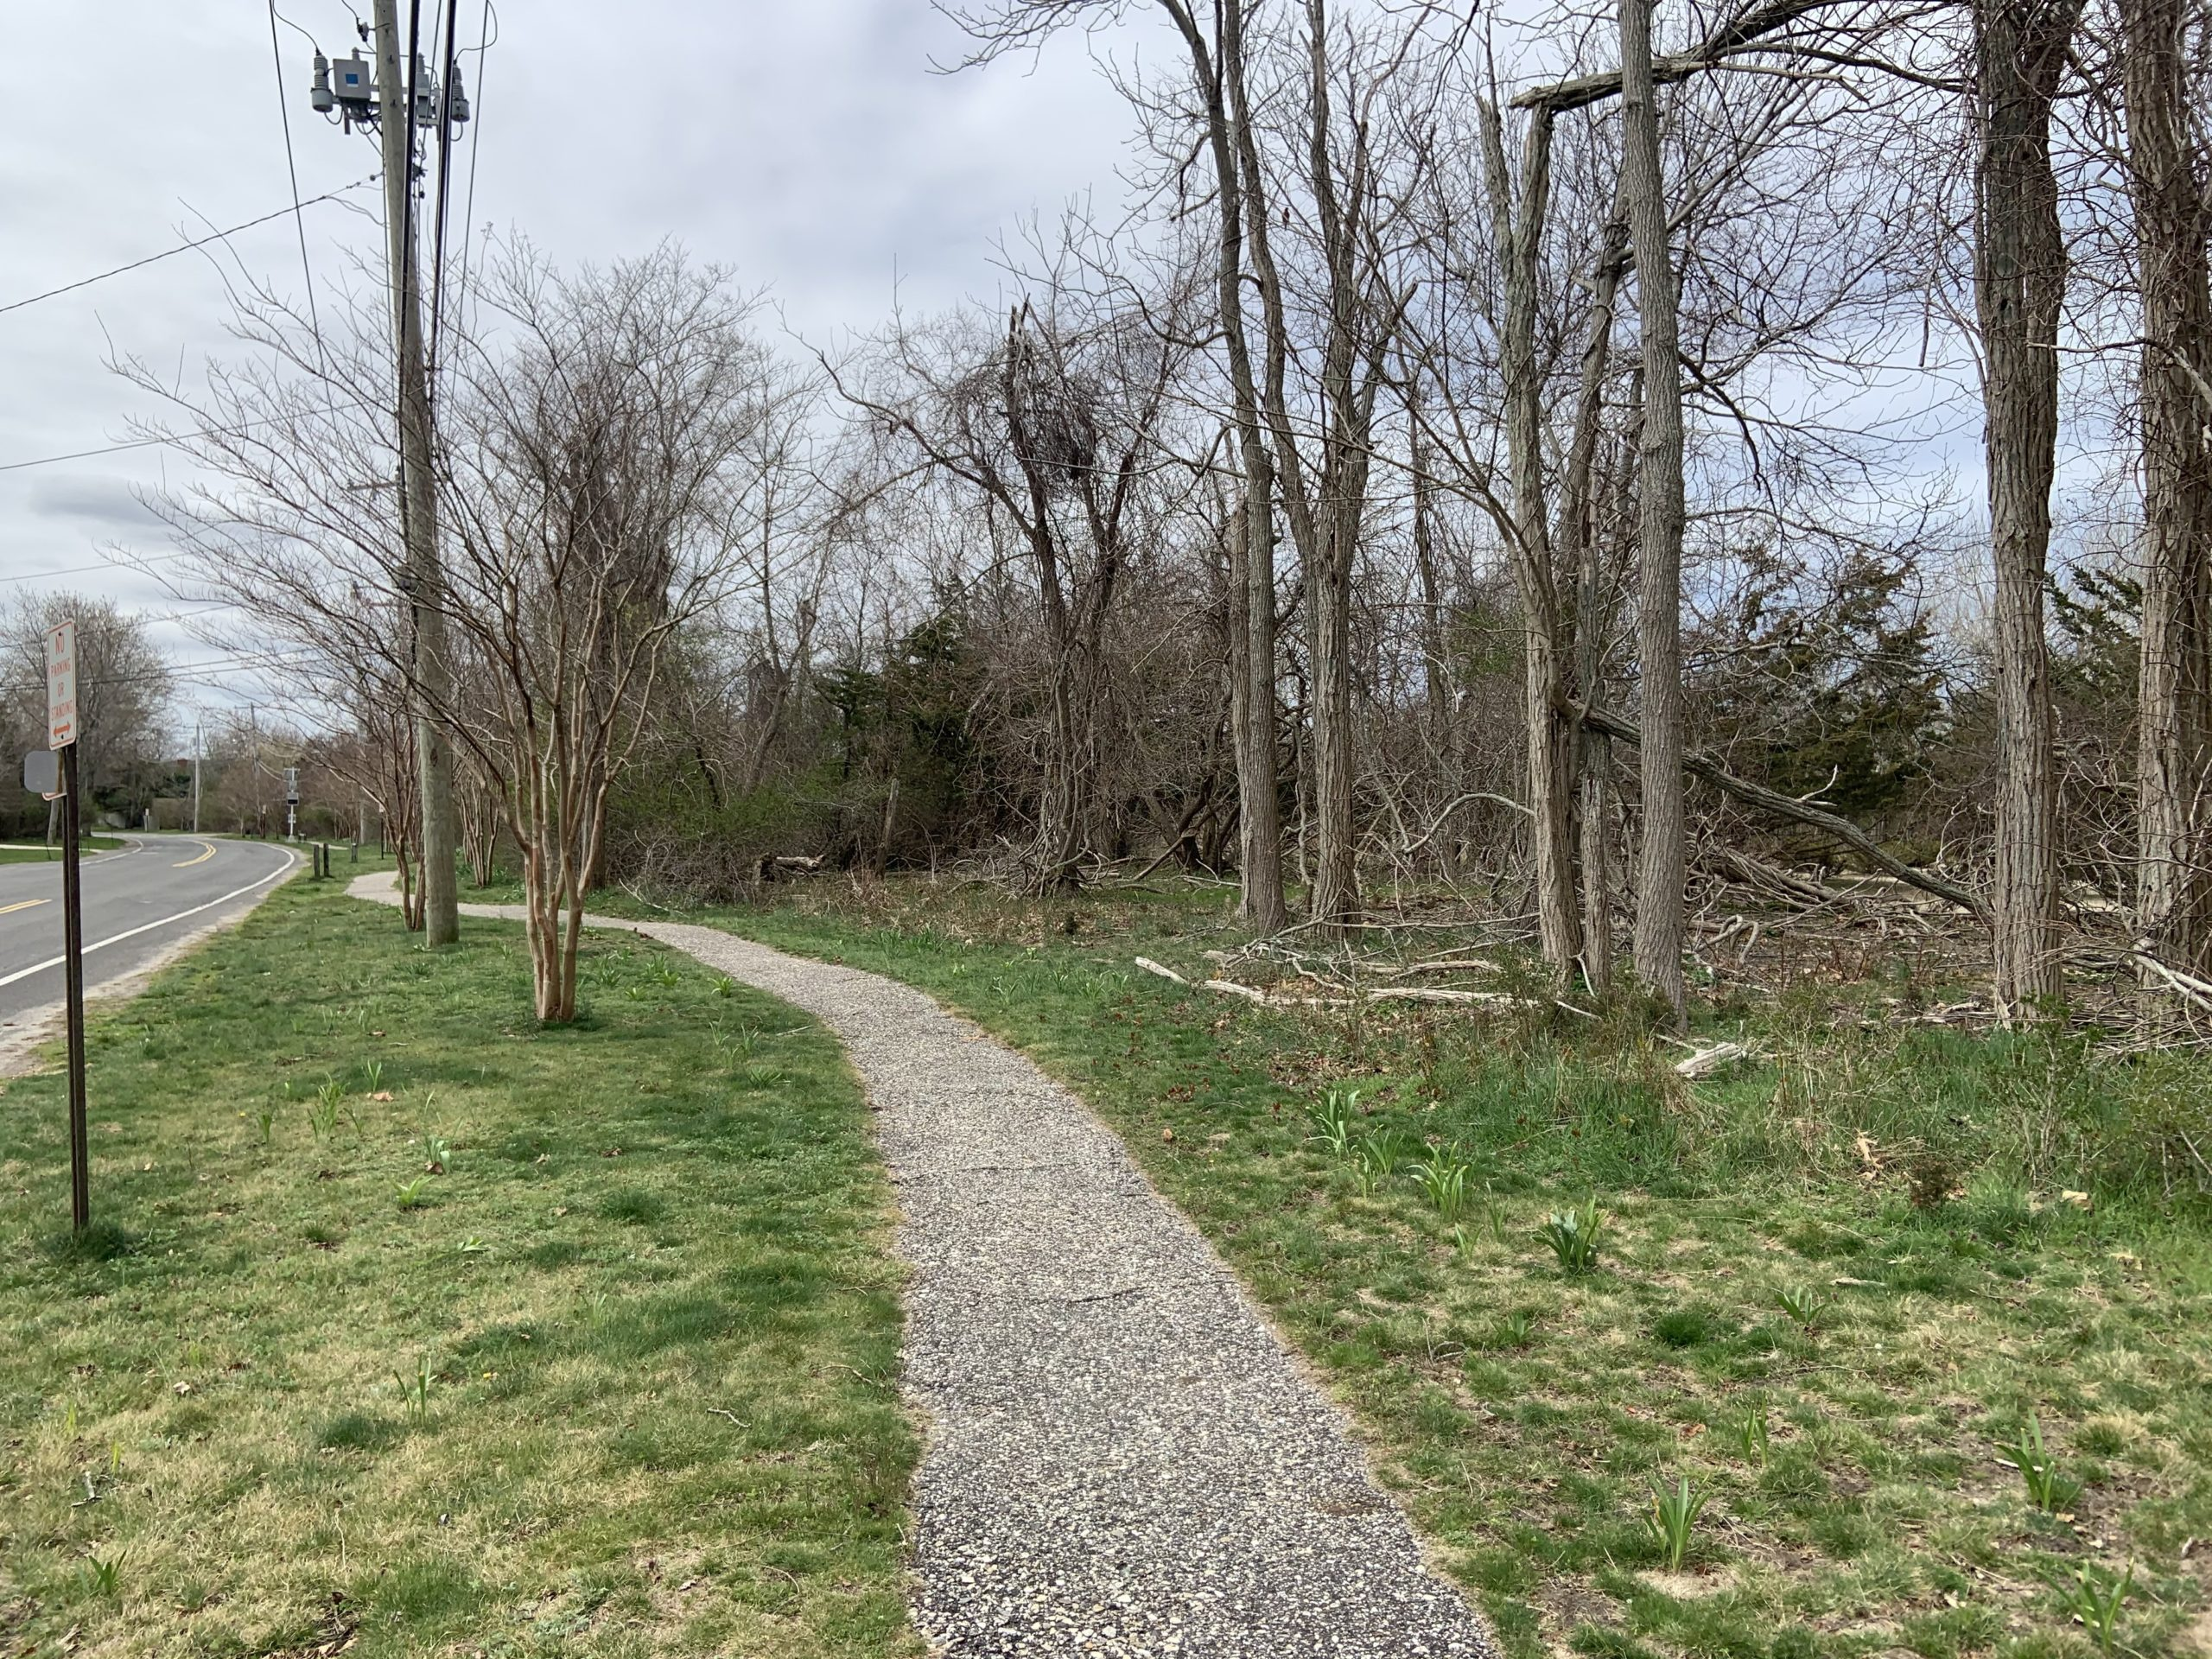 The Sag Harbor Village Board heard a proposal to create a nature education center in the Cilli Farm preserve off Long Island Avenue this week. STEPHEN J. KOTZ